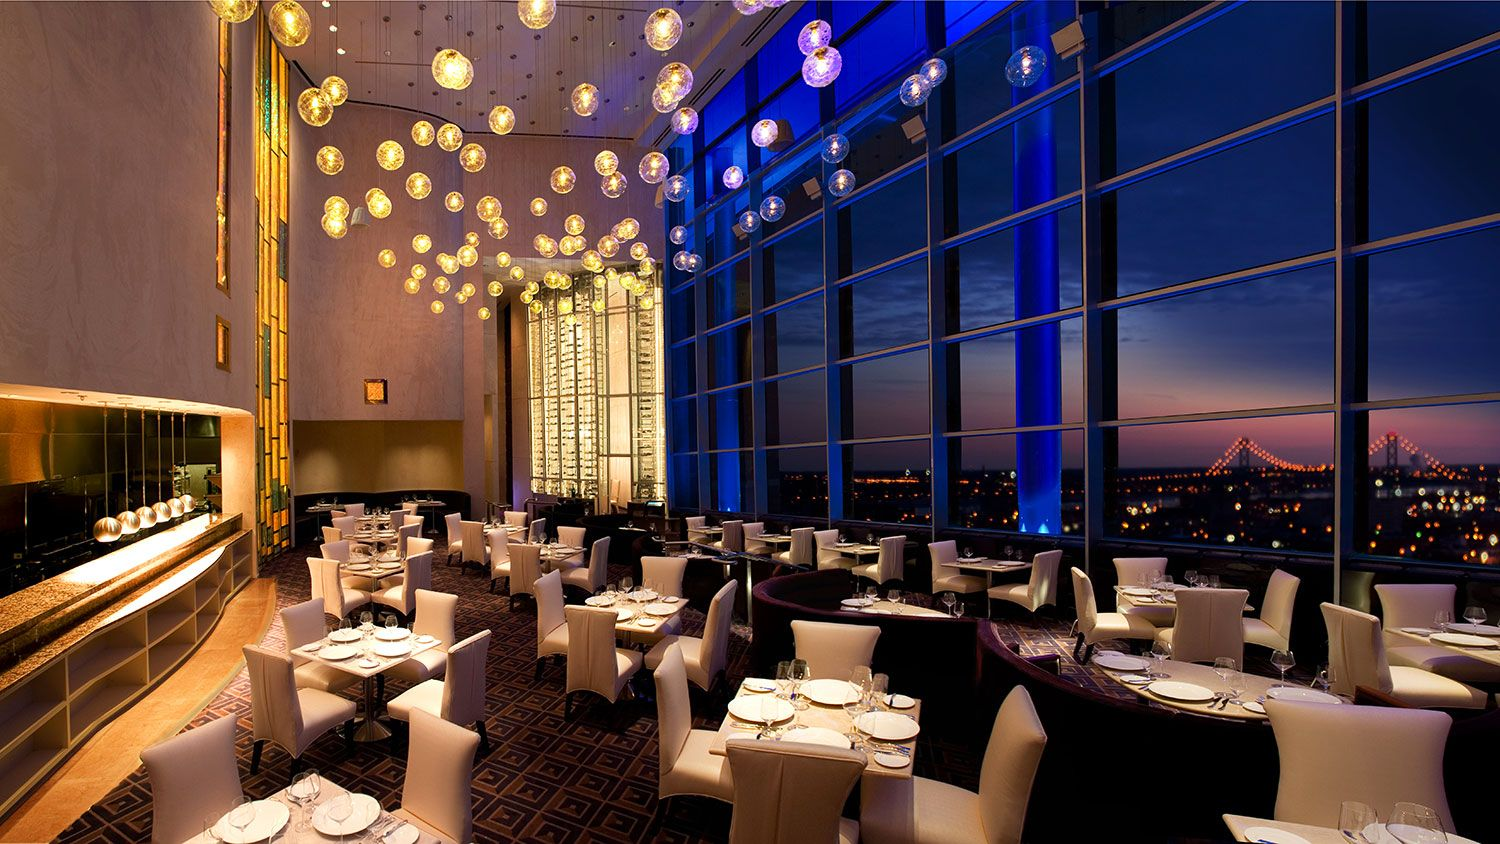 The 100 Most Scenic Restaurants in America, According to